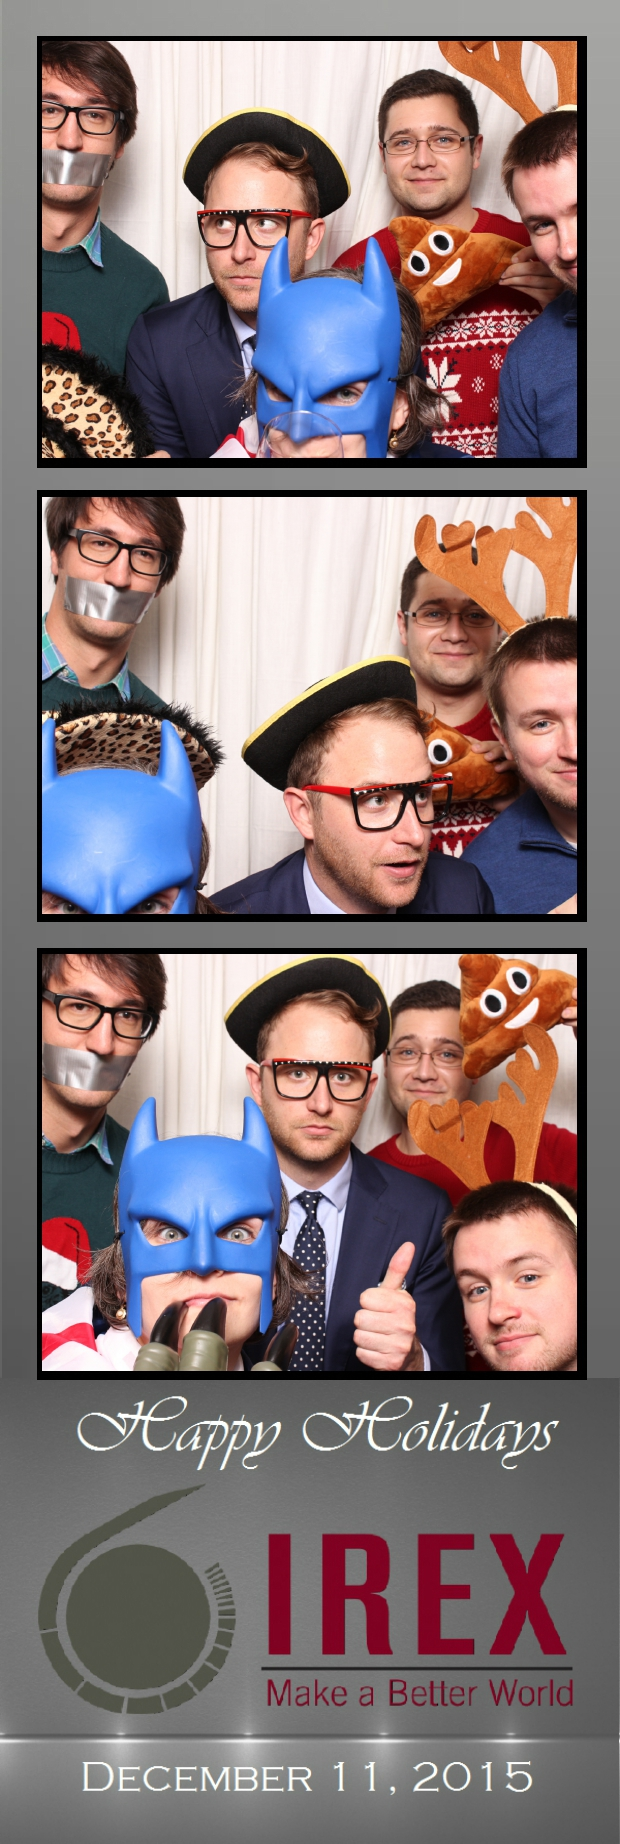 Guest House Events Photo Booth Strips IREX (48).jpg